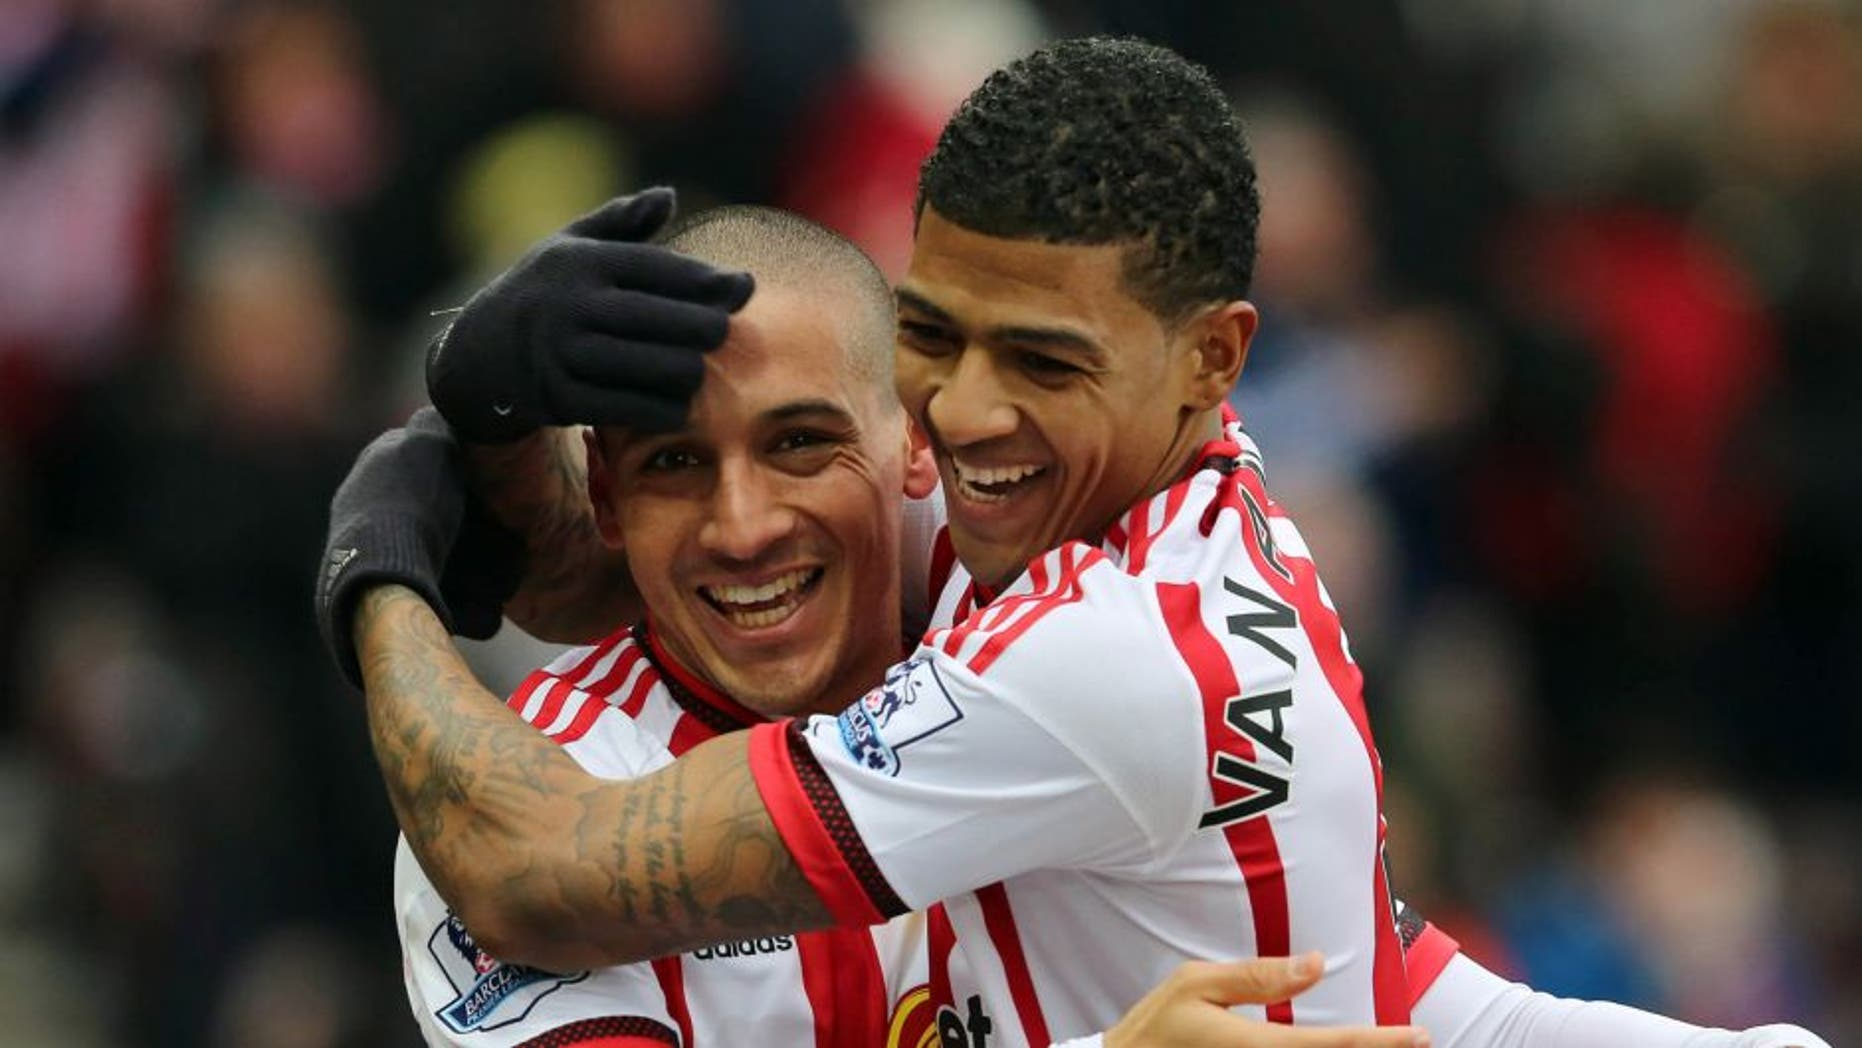 SUNDERLAND, UNITED KINGDOM - FEBRUARY 13: Wahbi Khazri of Sunderland (L) celebrates the first goal with Patrick Van Aanholt during the Barclays Premier match between Sunderland and Manchester United at the Stadium of Light on February 13, 2016 in Sunderland, England. (Photo by Ian Horrocks - Sunderland AFC via Getty Images)